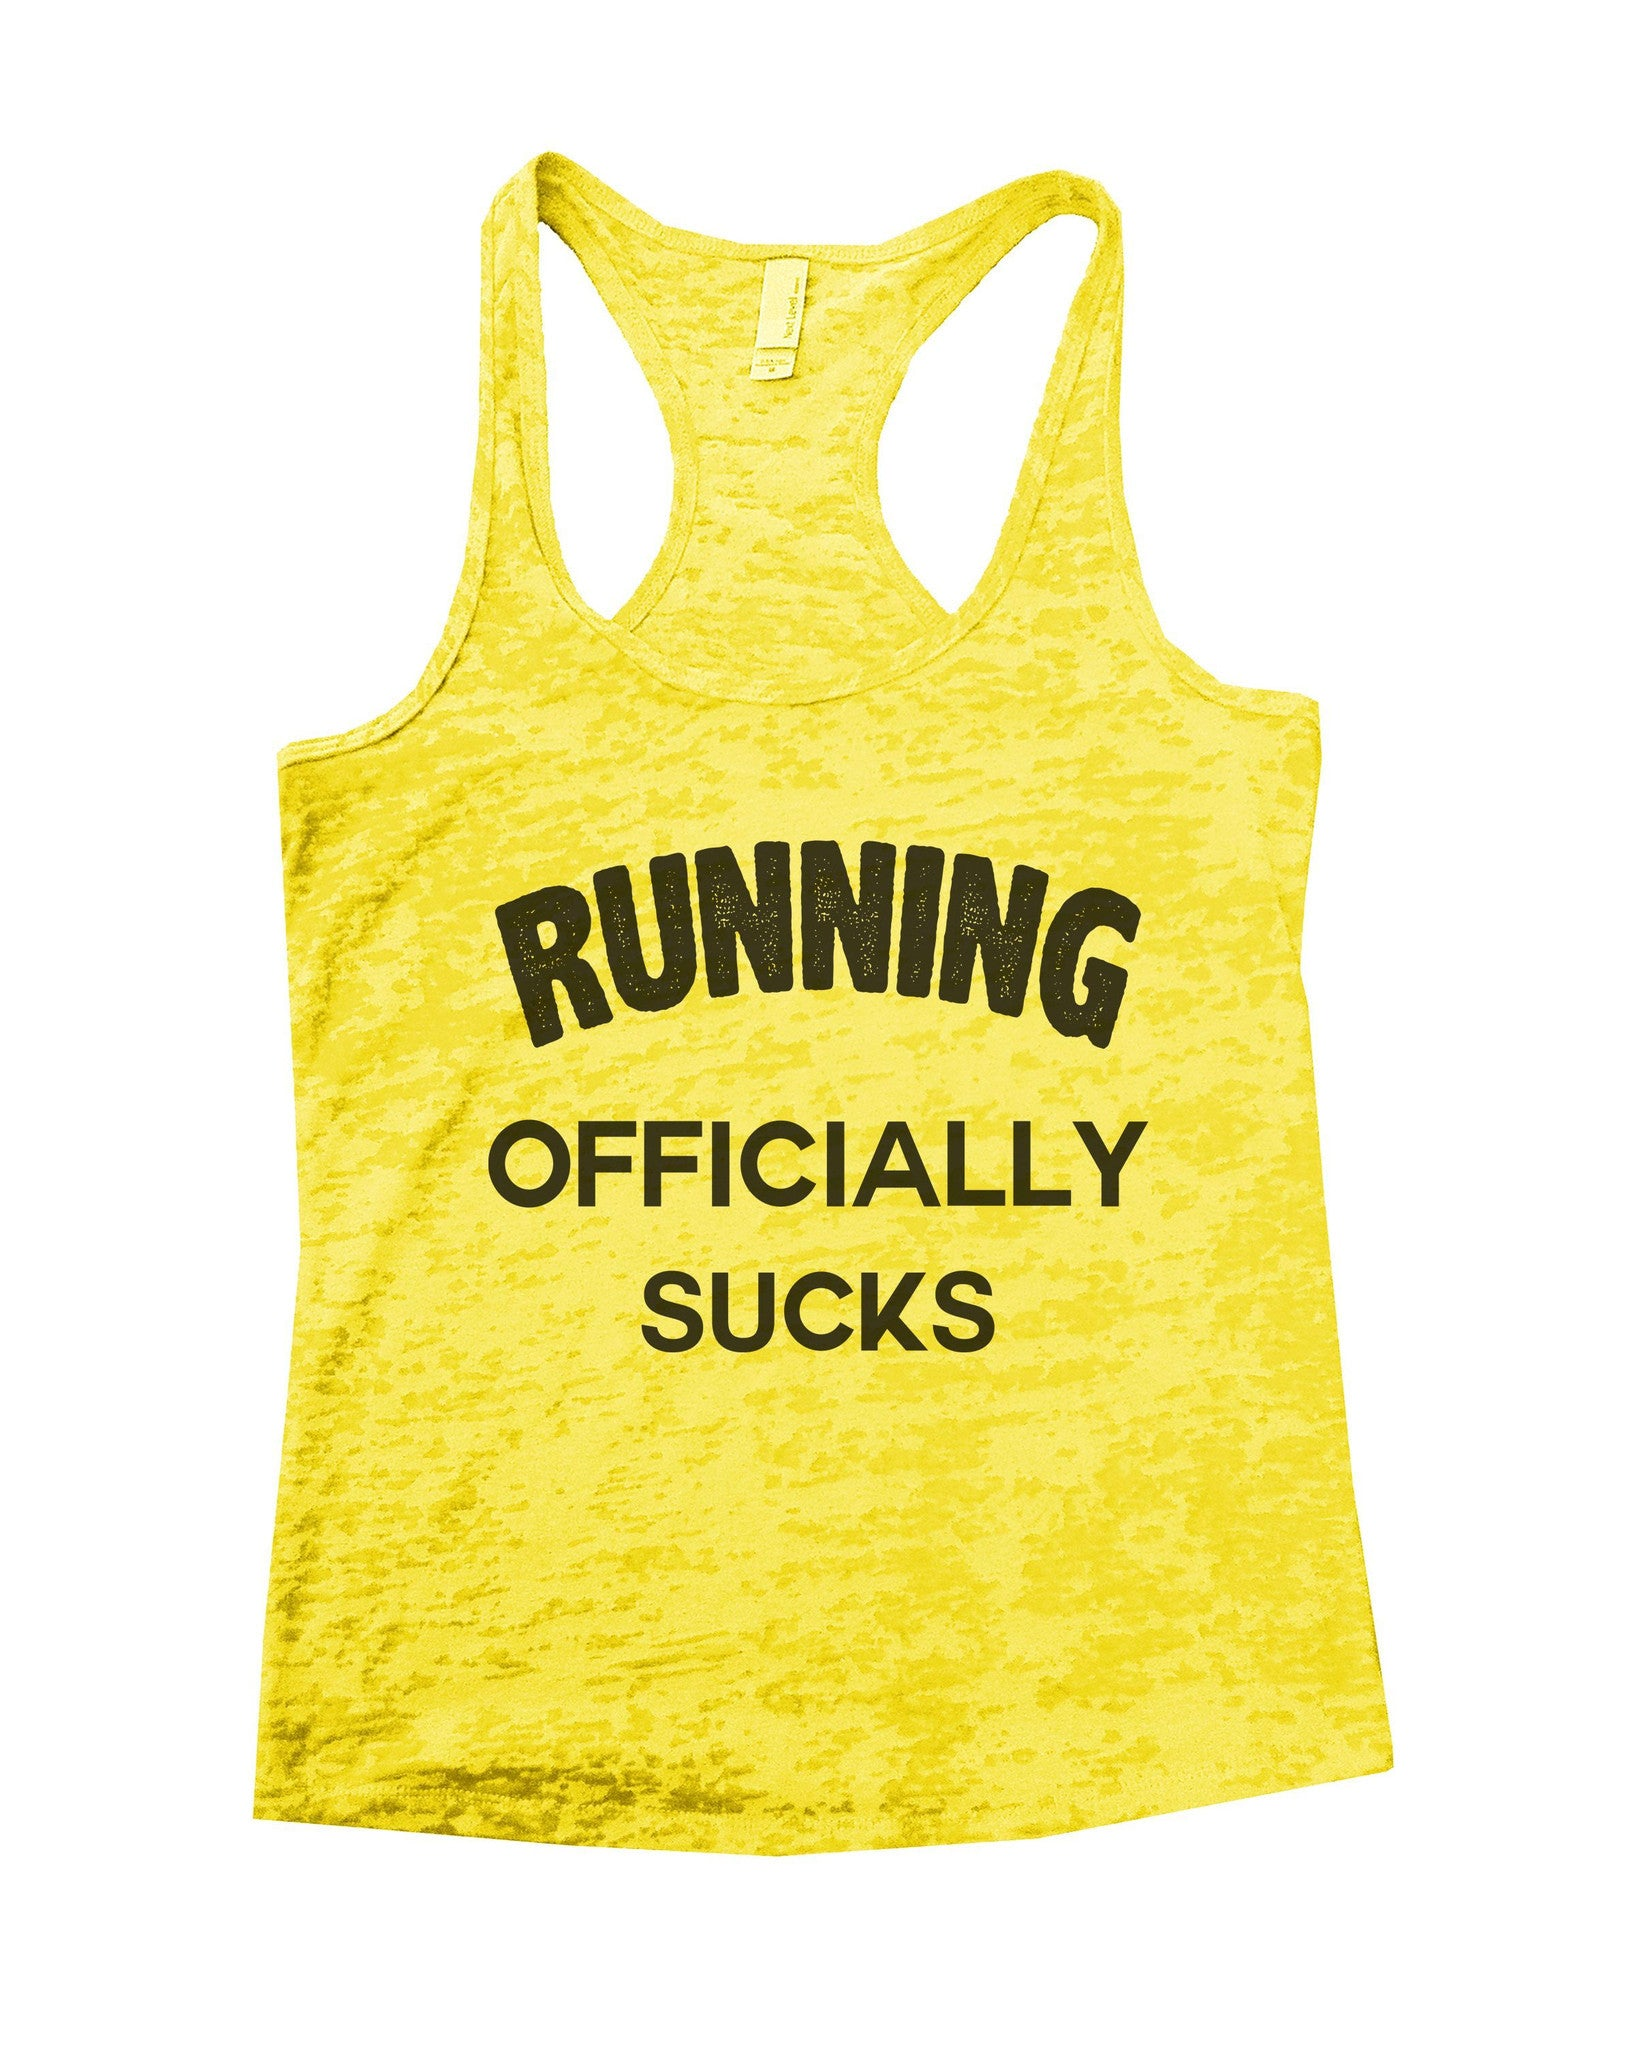 Running Officially Sucks Burnout Tank Top By BurnoutTankTops.com - 645 - Funny Shirts Tank Tops Burnouts and Triblends  - 6